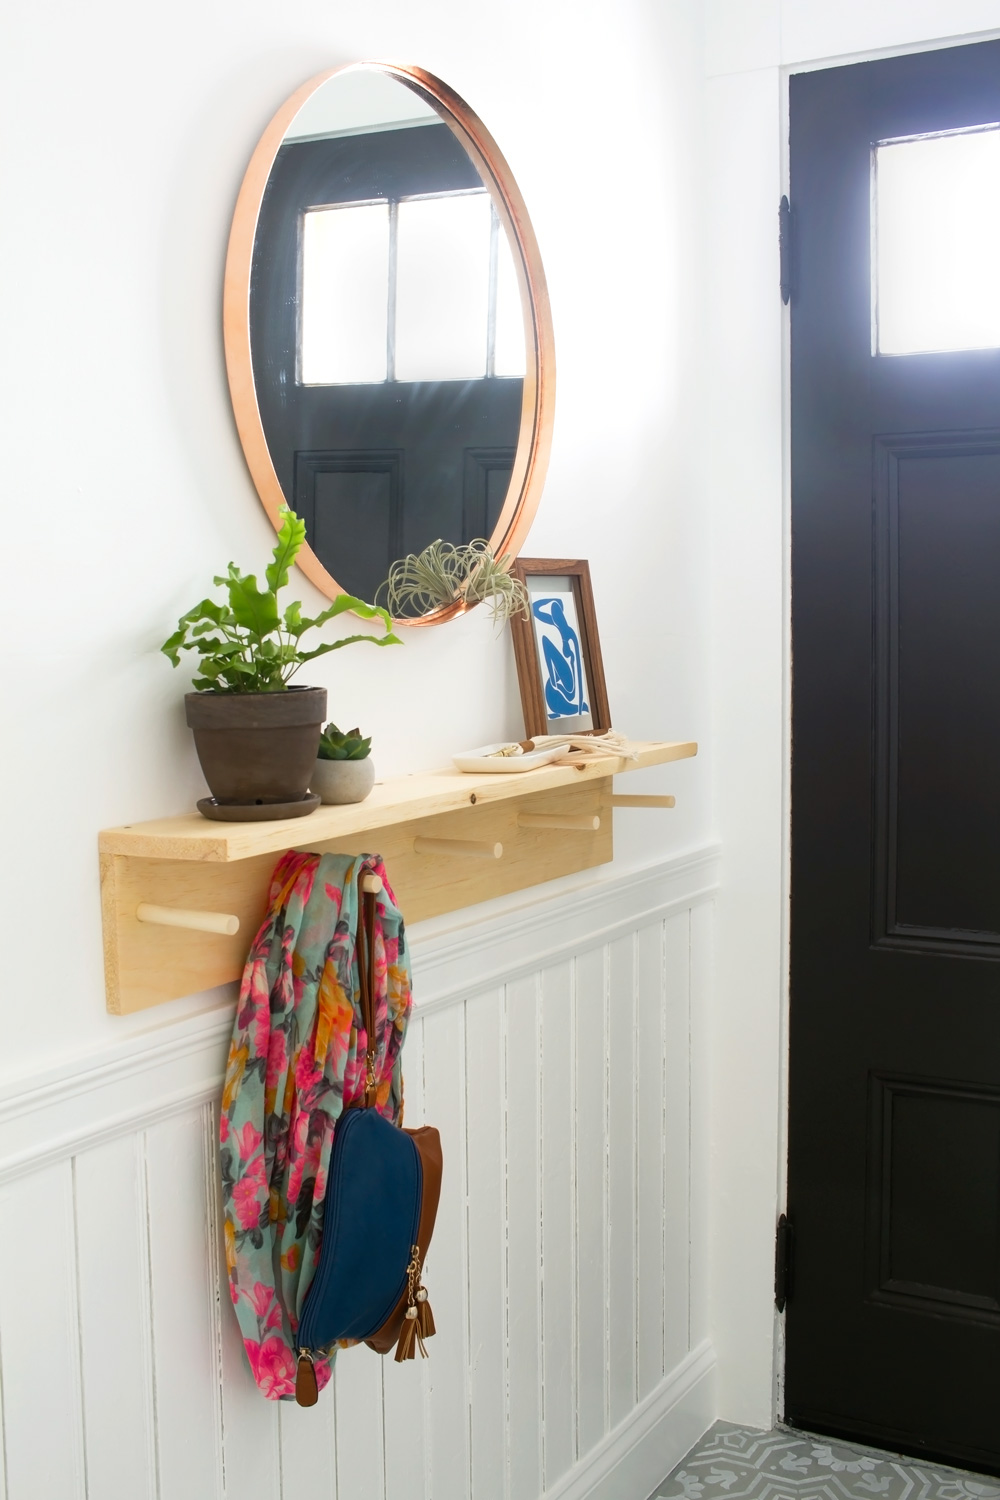 This minimal DIY entryway coat rack is simple to make with a power drill and just a few supplies. Dowel pegs can hold your bags and jackets and a shelf can catch your keys and provide a spot for decoration!